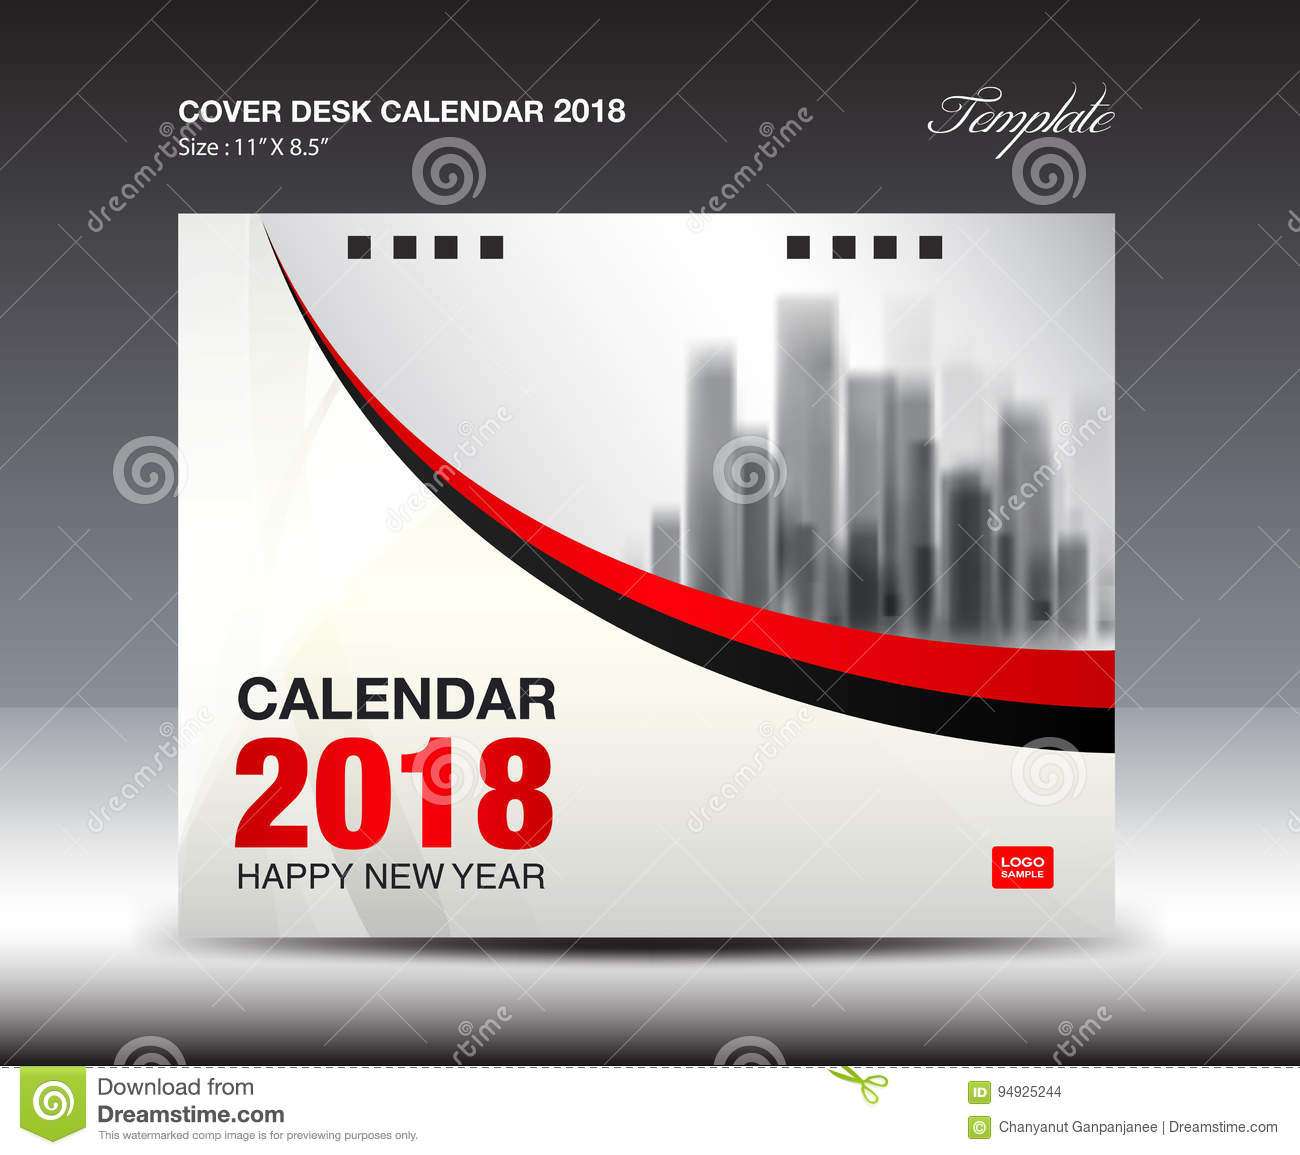 Calendar Cover 2018 : Red cover desk calendar year template flyer stock